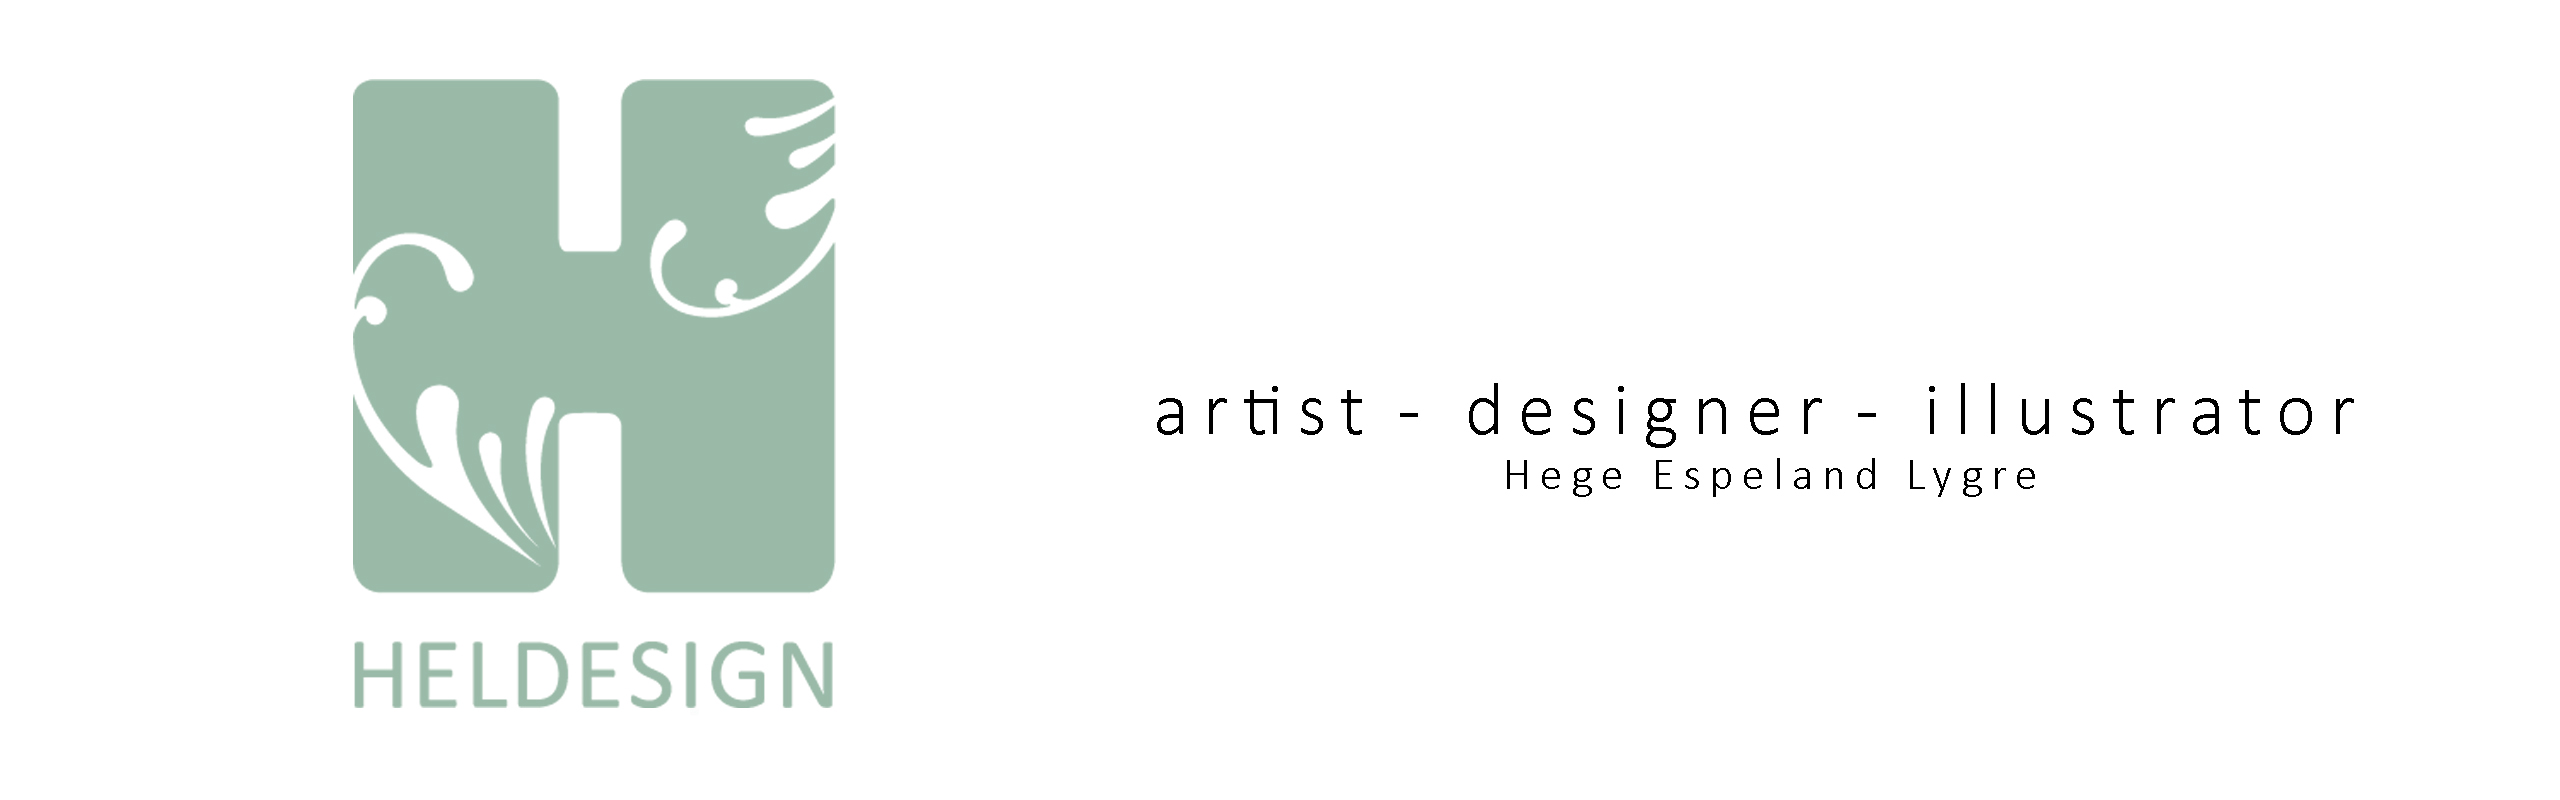 www.HELdesign.com